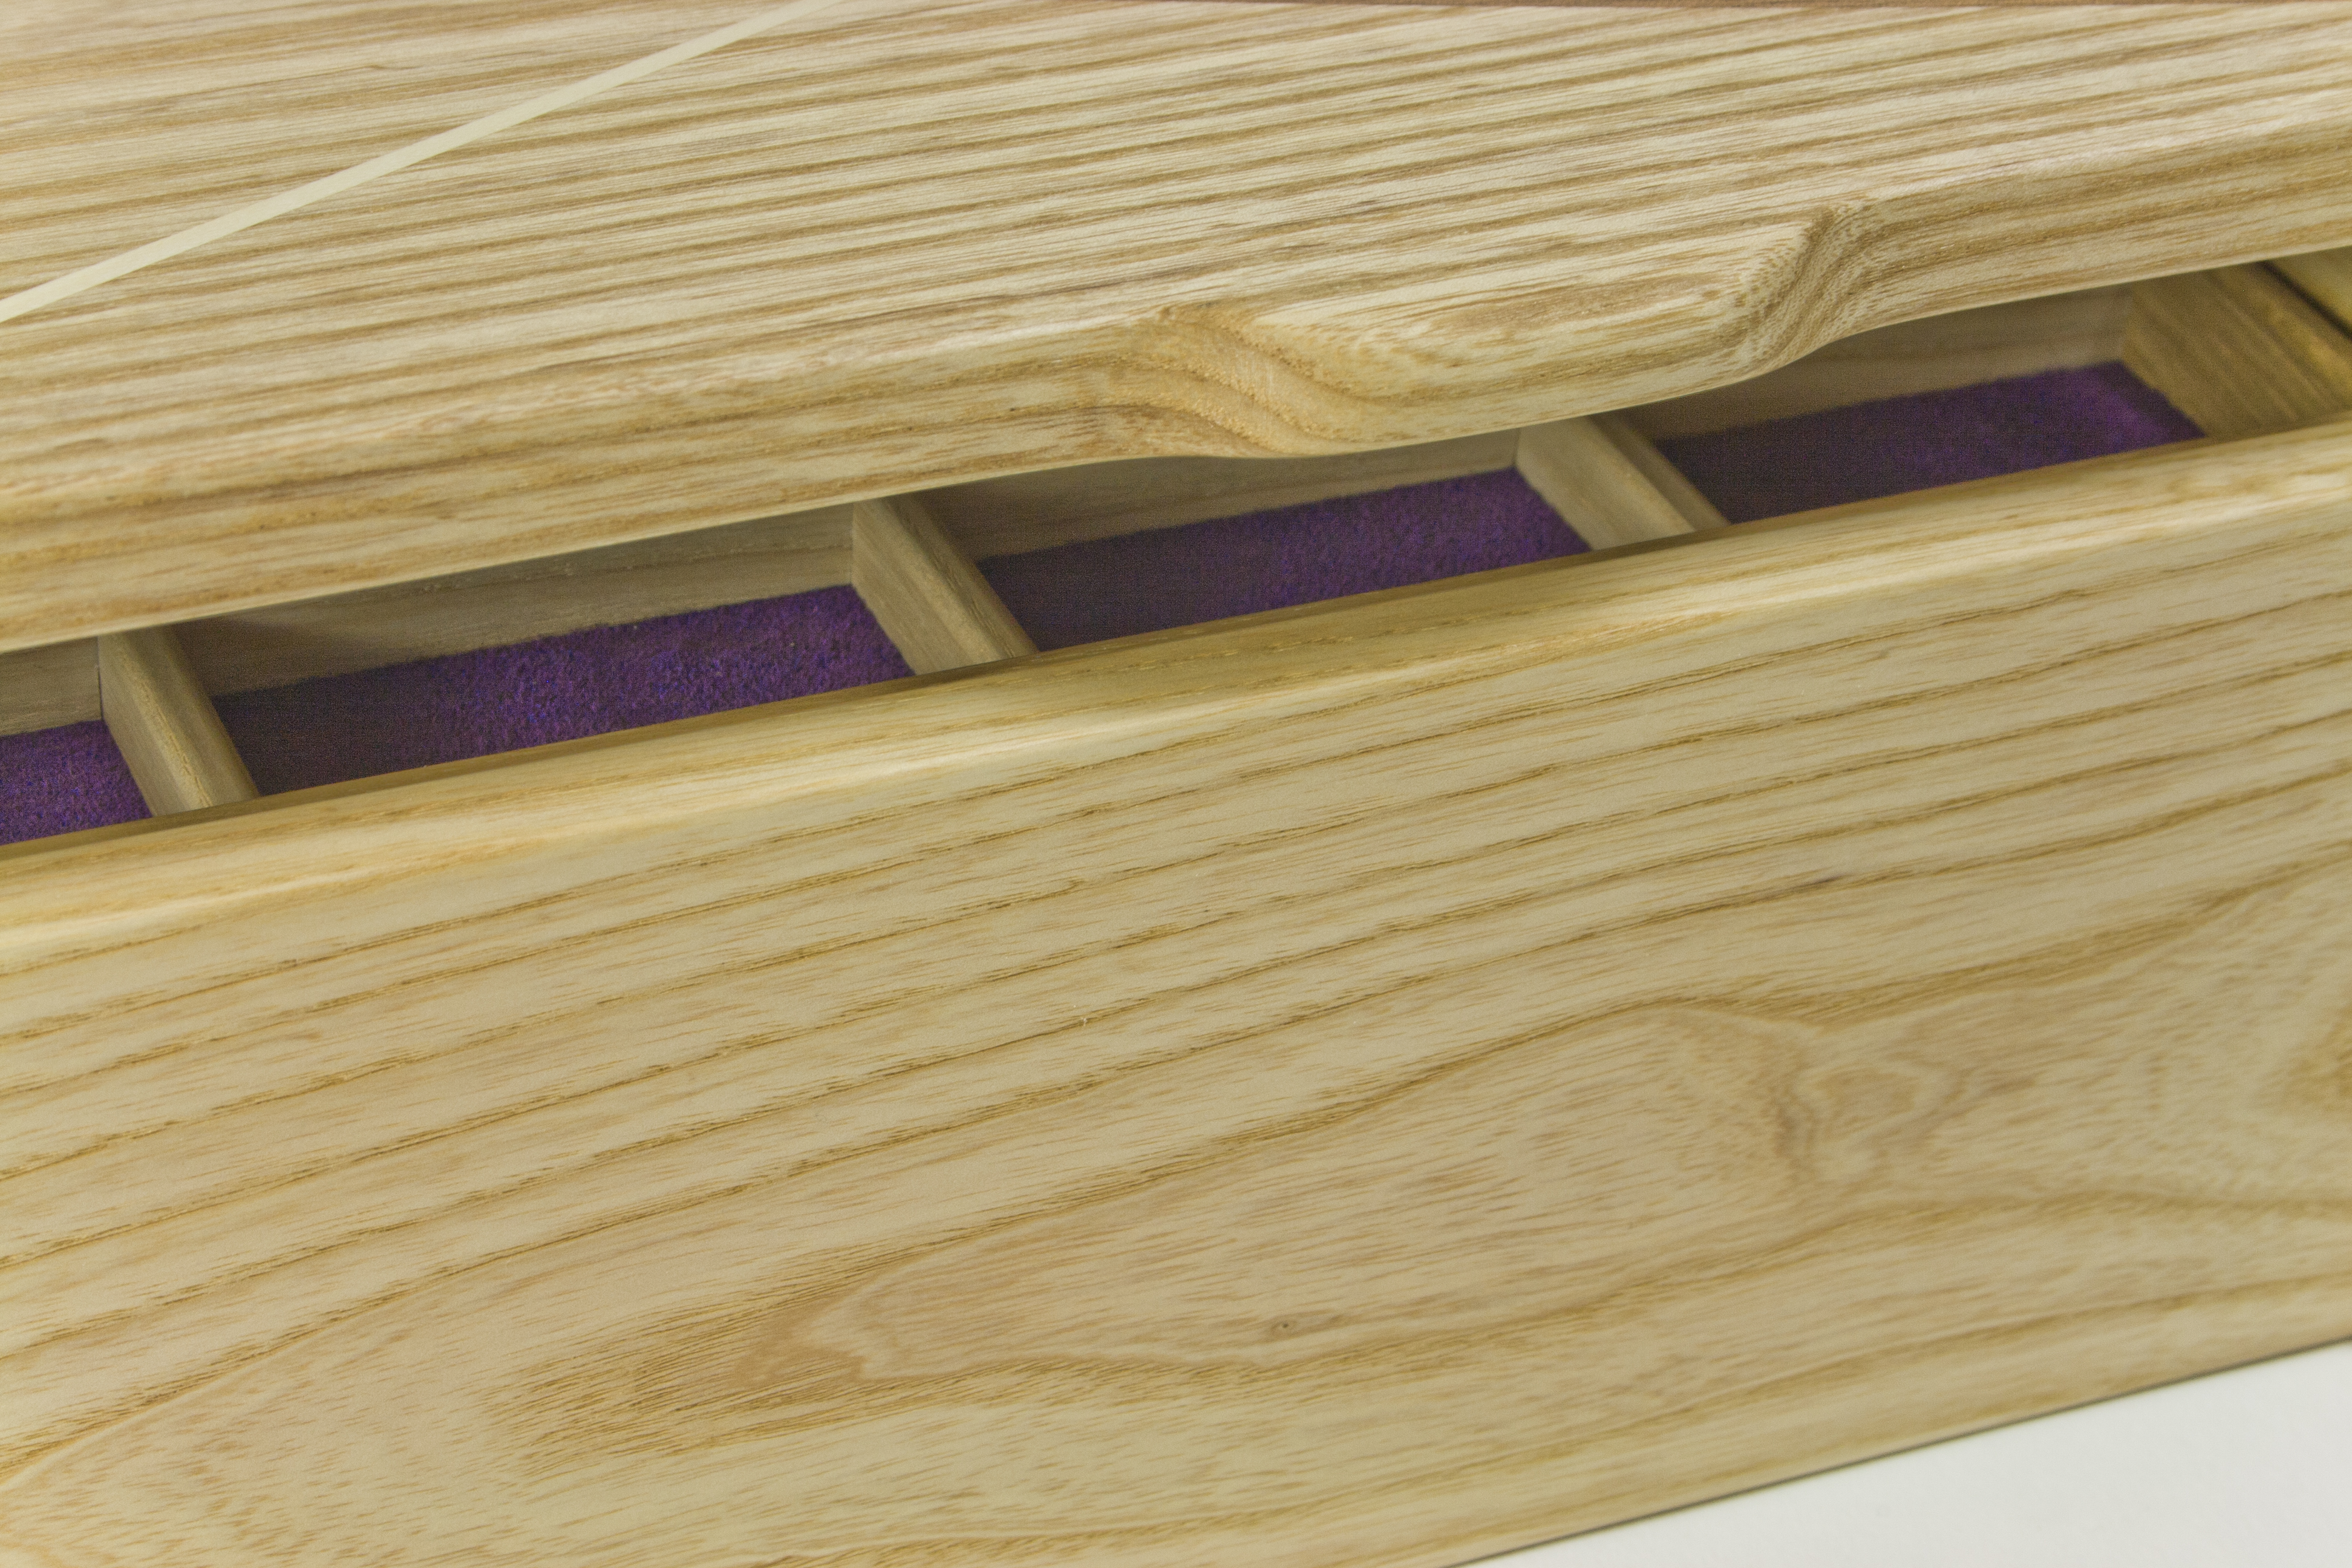 Close up of jewellery box lid handle